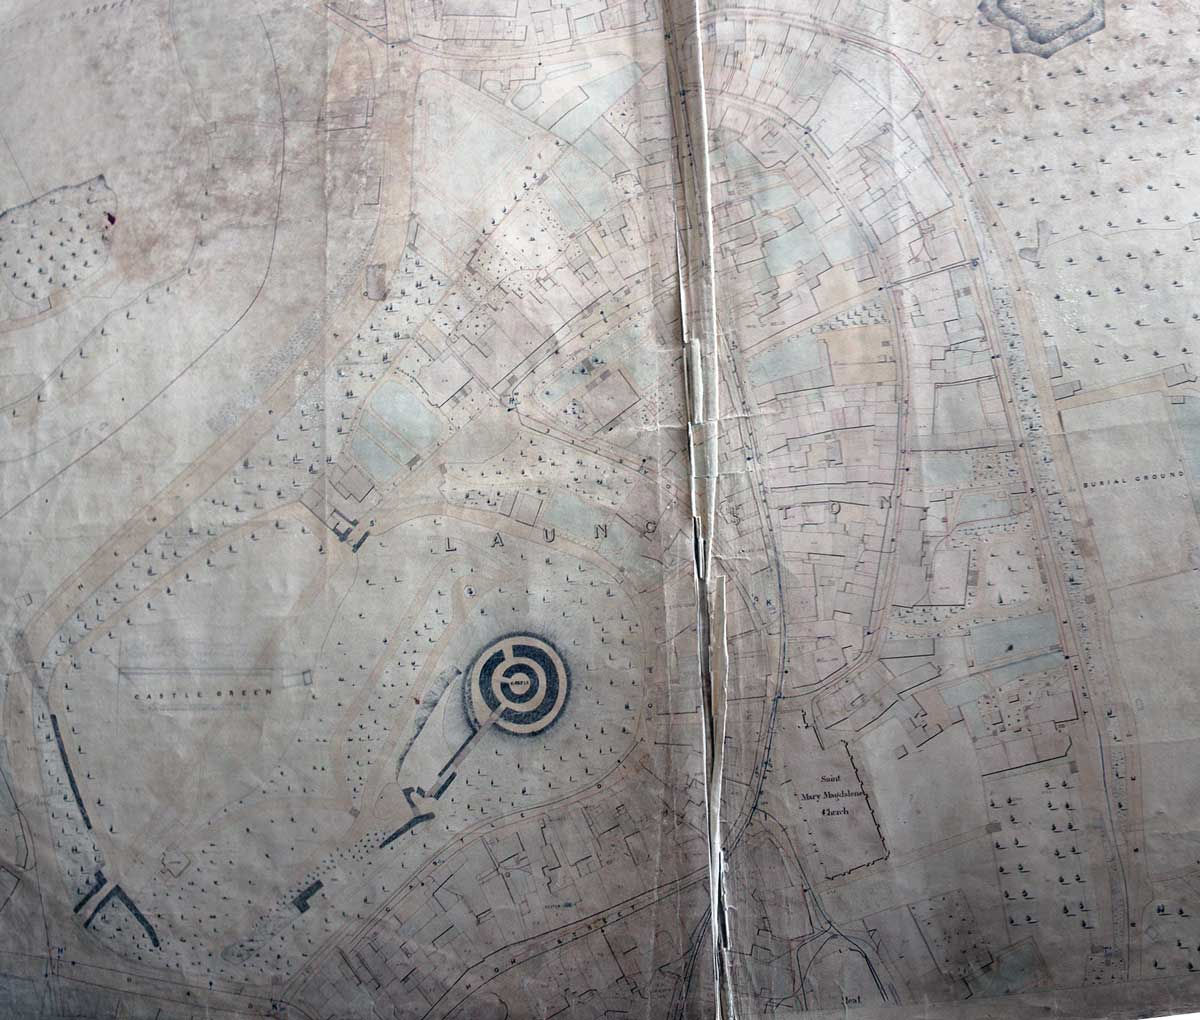 launceston-town-water-map-from-1853